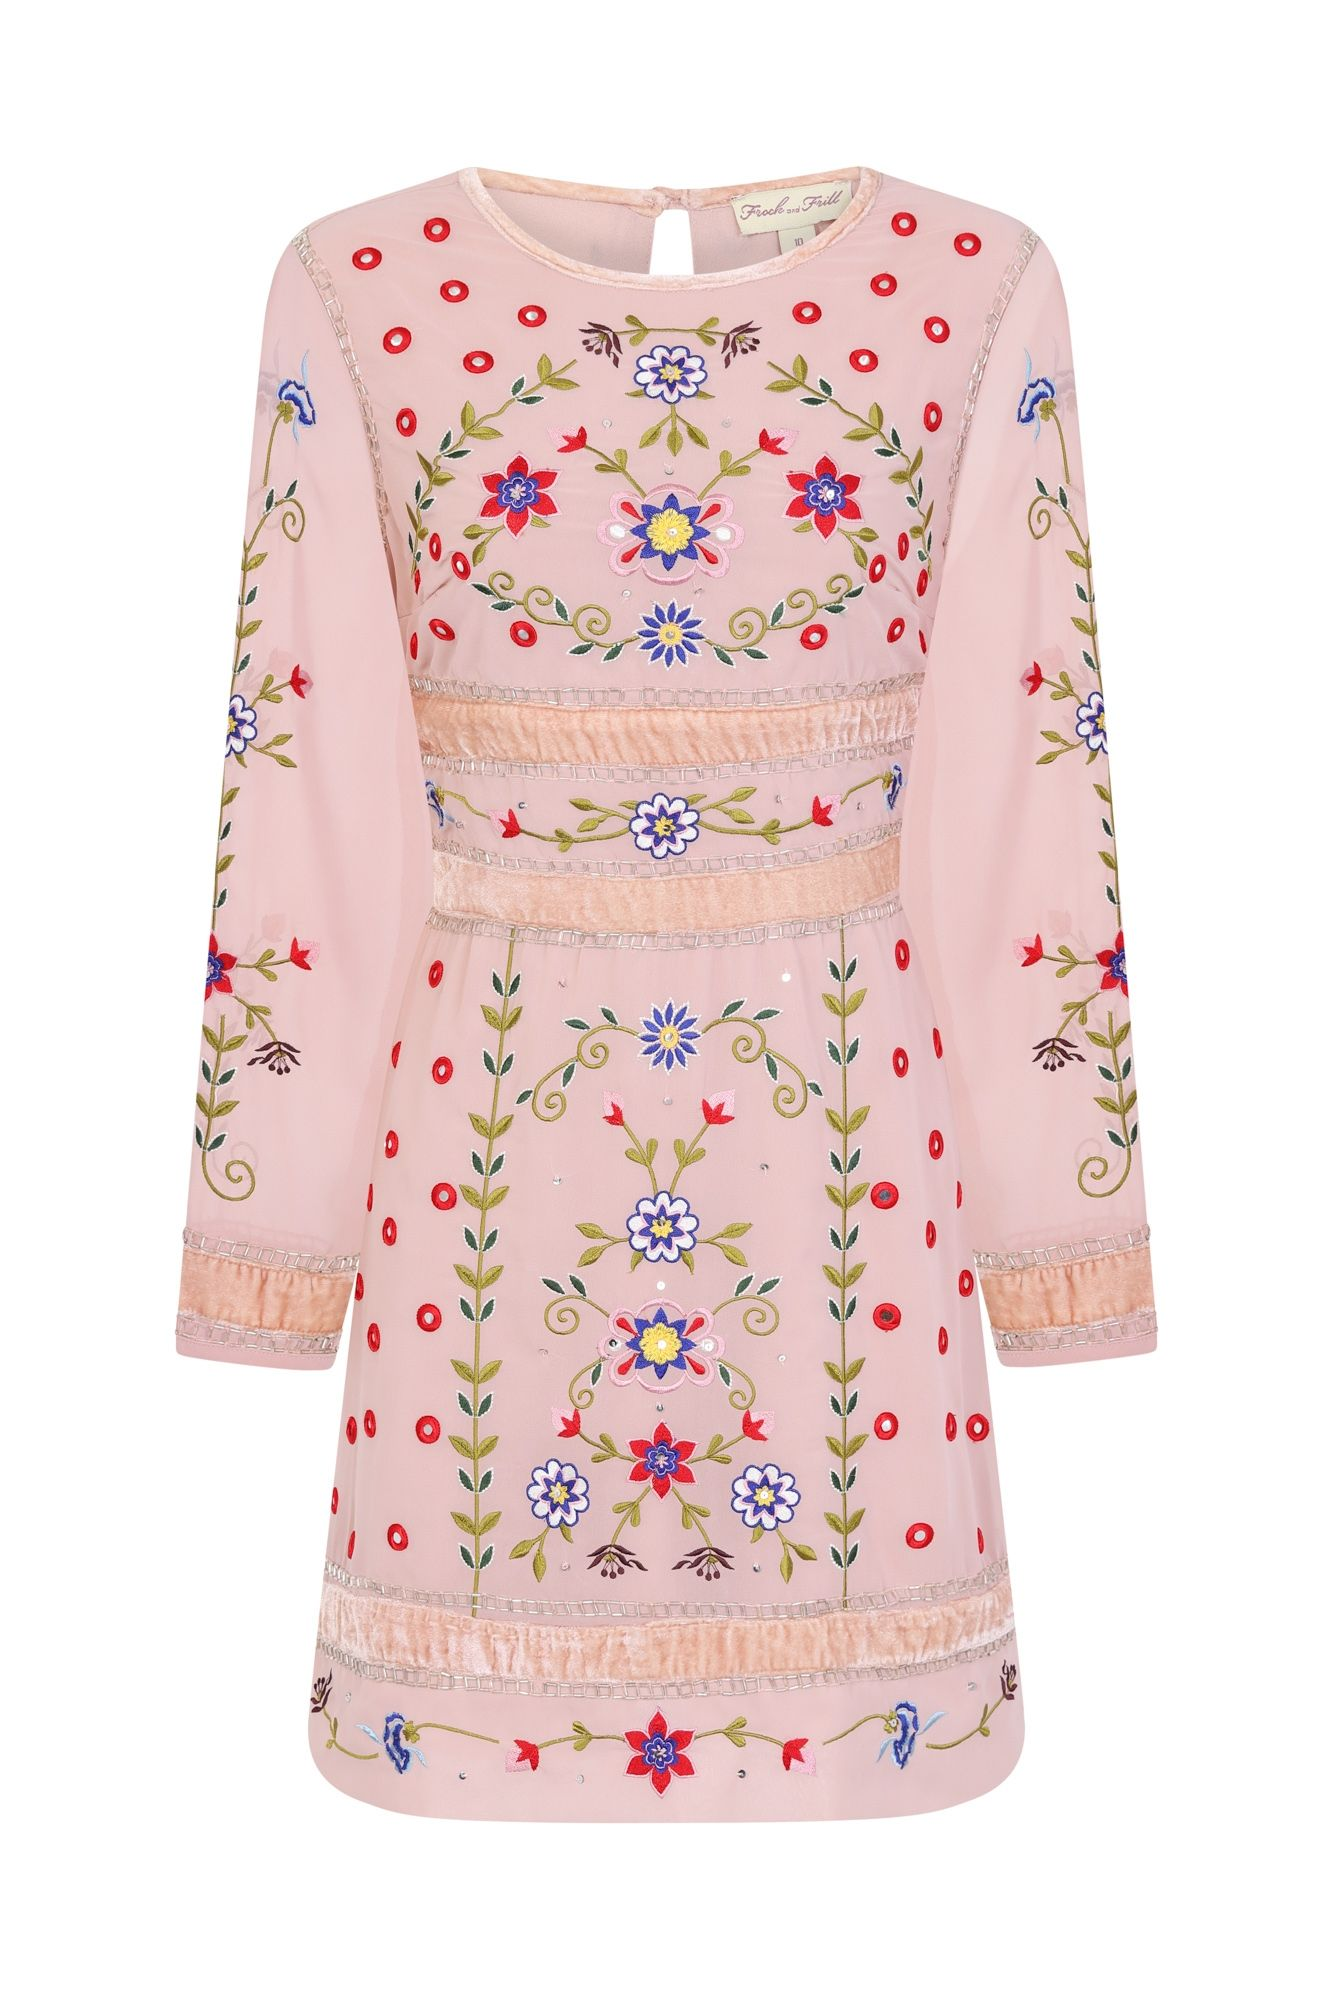 Frock And Frill Fawn Pink Floral Long Sleeve Embroidered Mini Dress Pink Long Dress Mini Dress Long Sleeve Mini Dress [ 2000 x 1333 Pixel ]